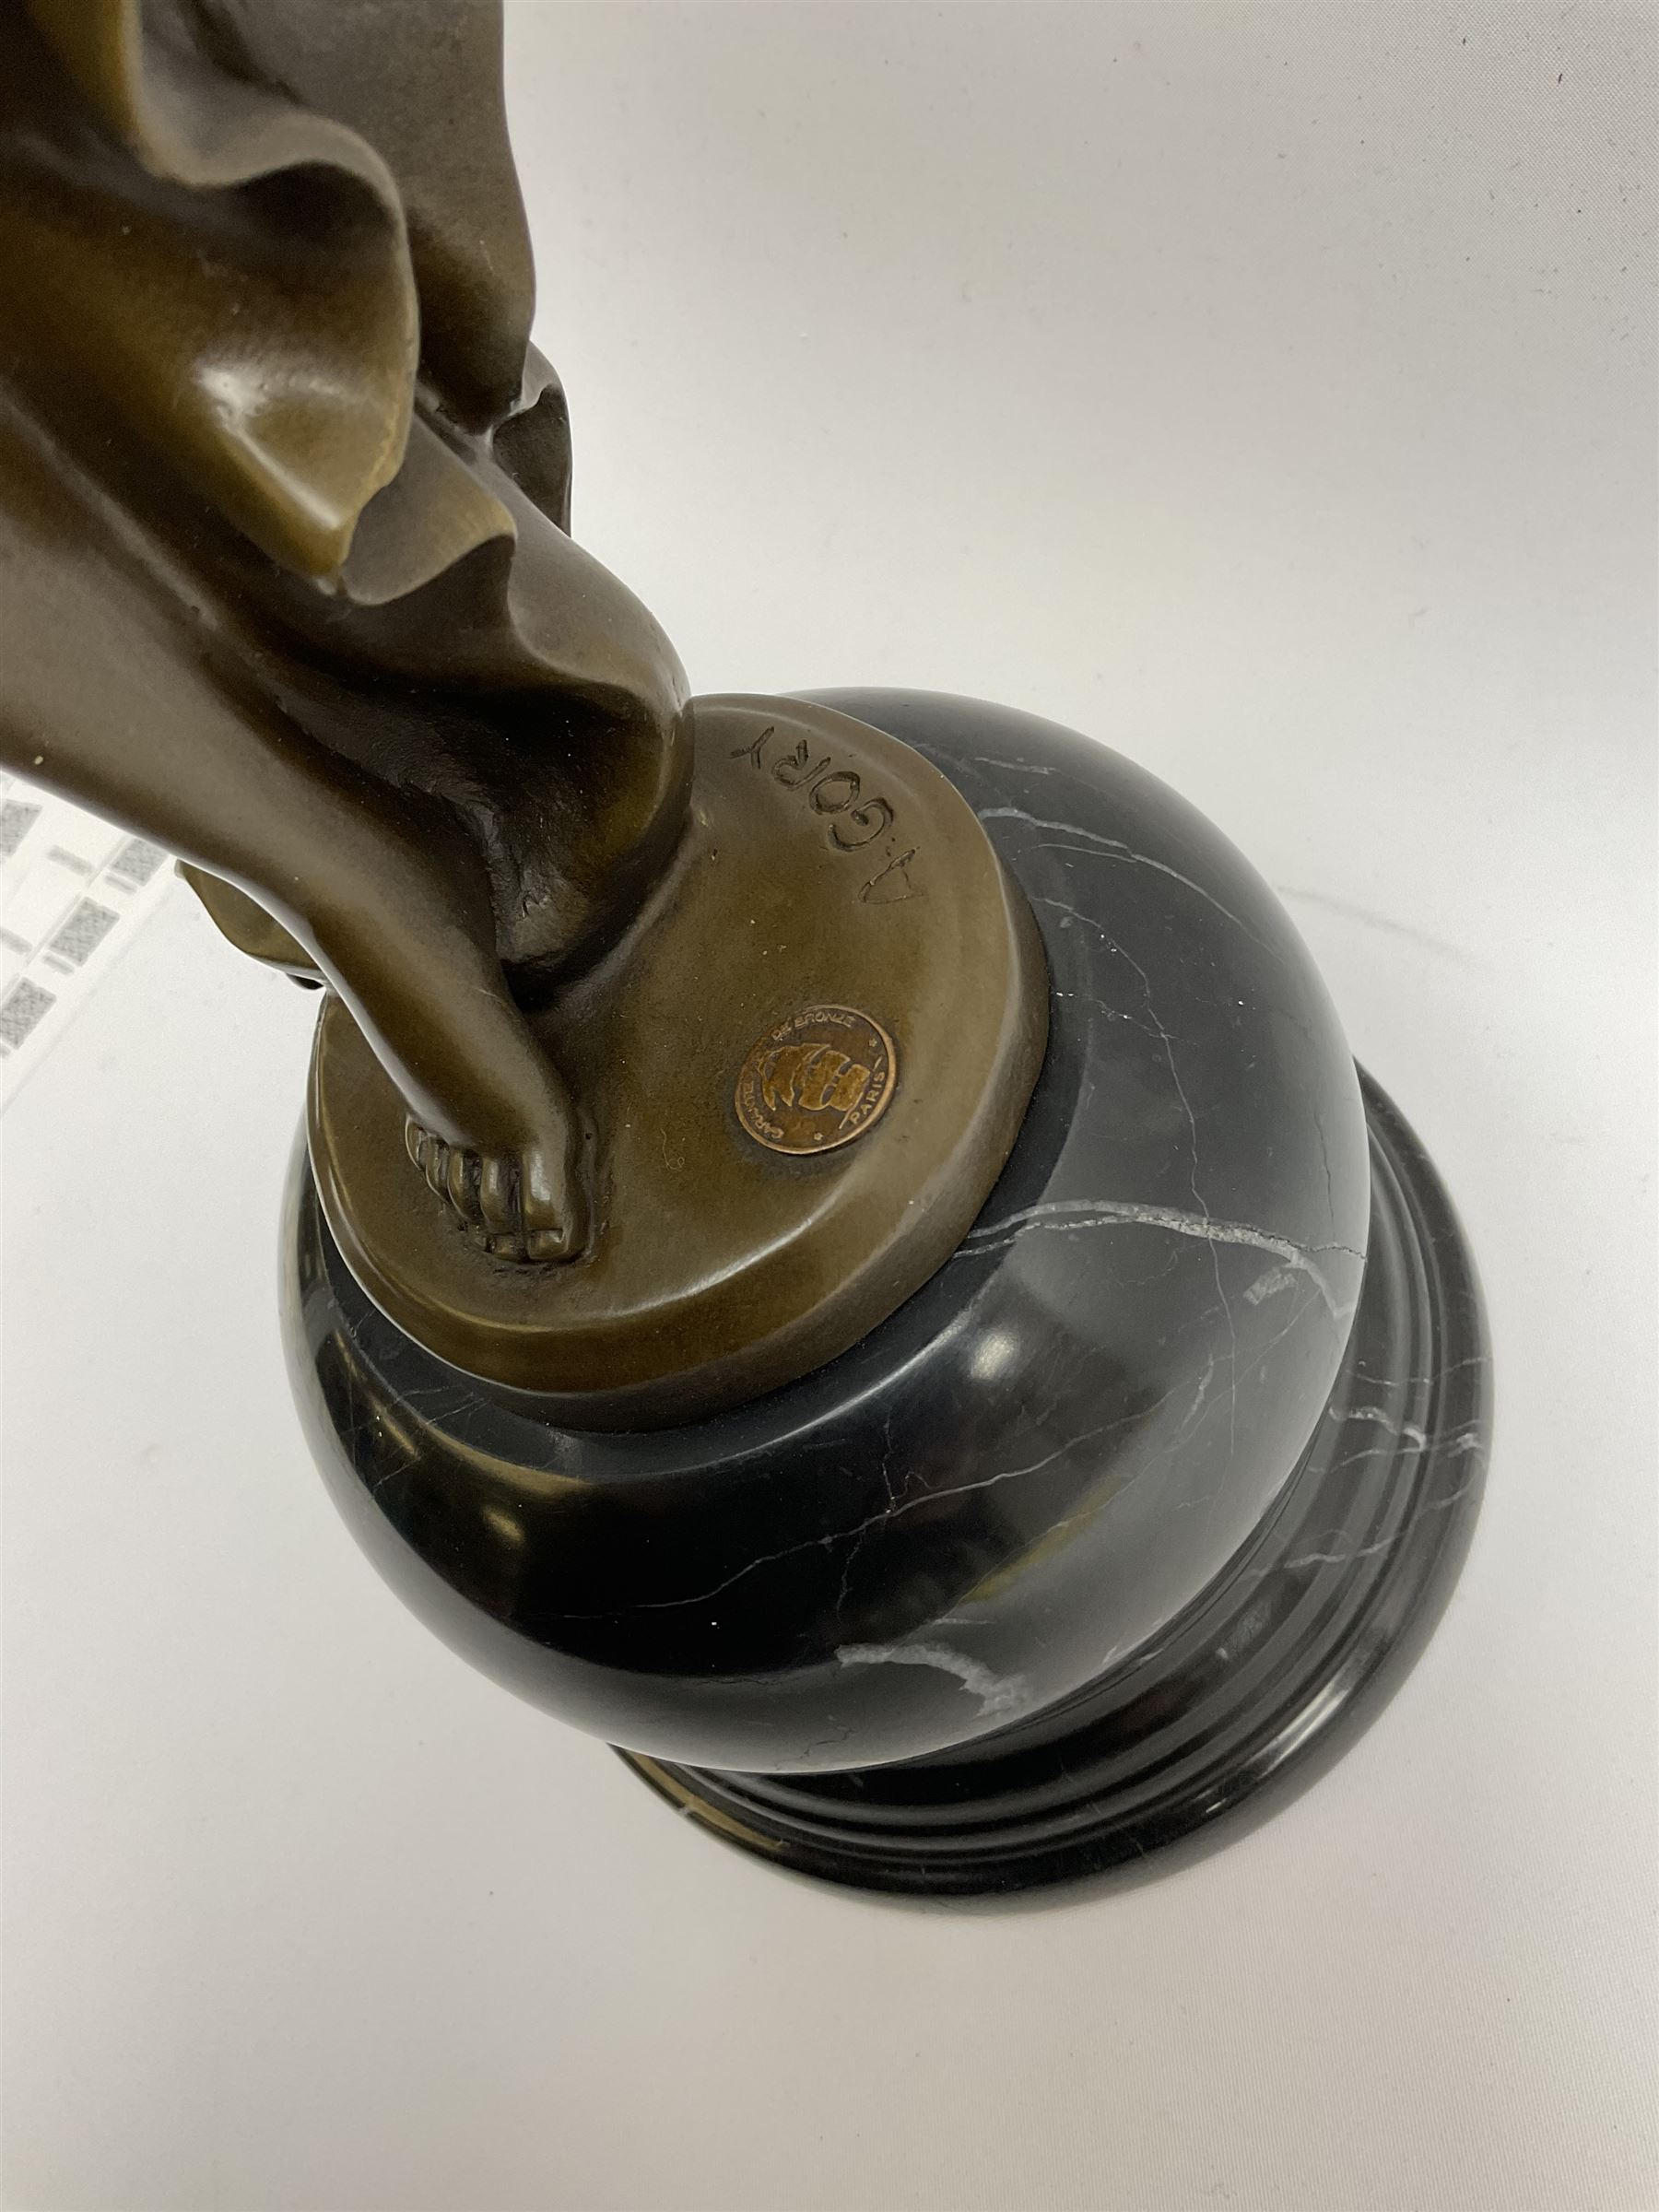 Art Deco style bronze figure of a dancer standing on one leg - Image 3 of 4